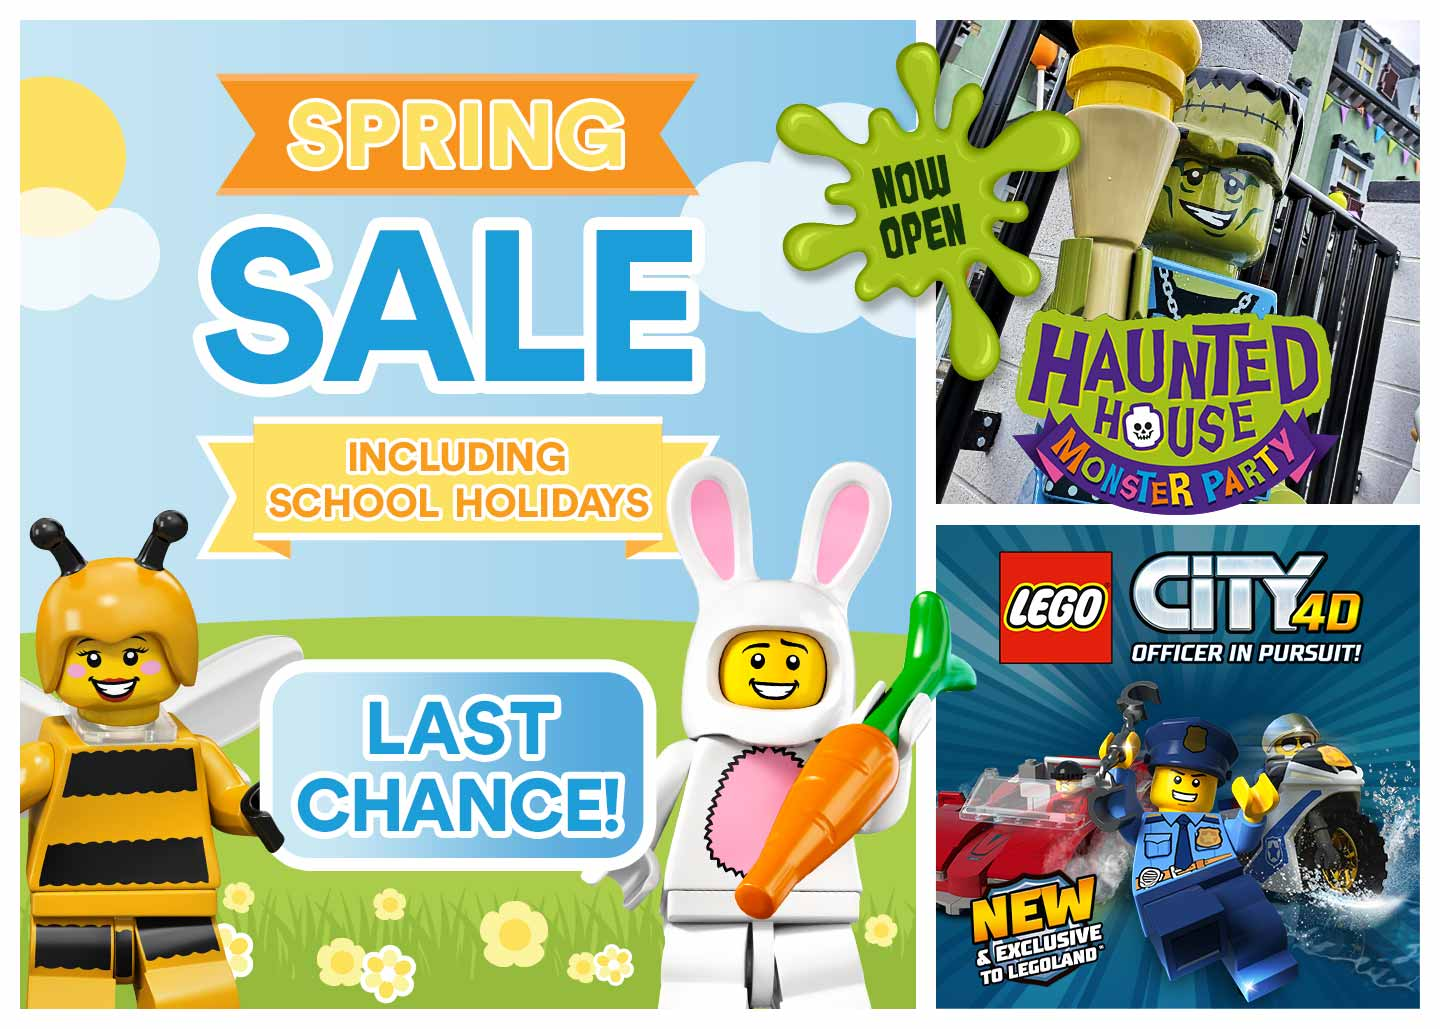 Last chance to save in the Spring Sale with LEGOLAND® Holidays